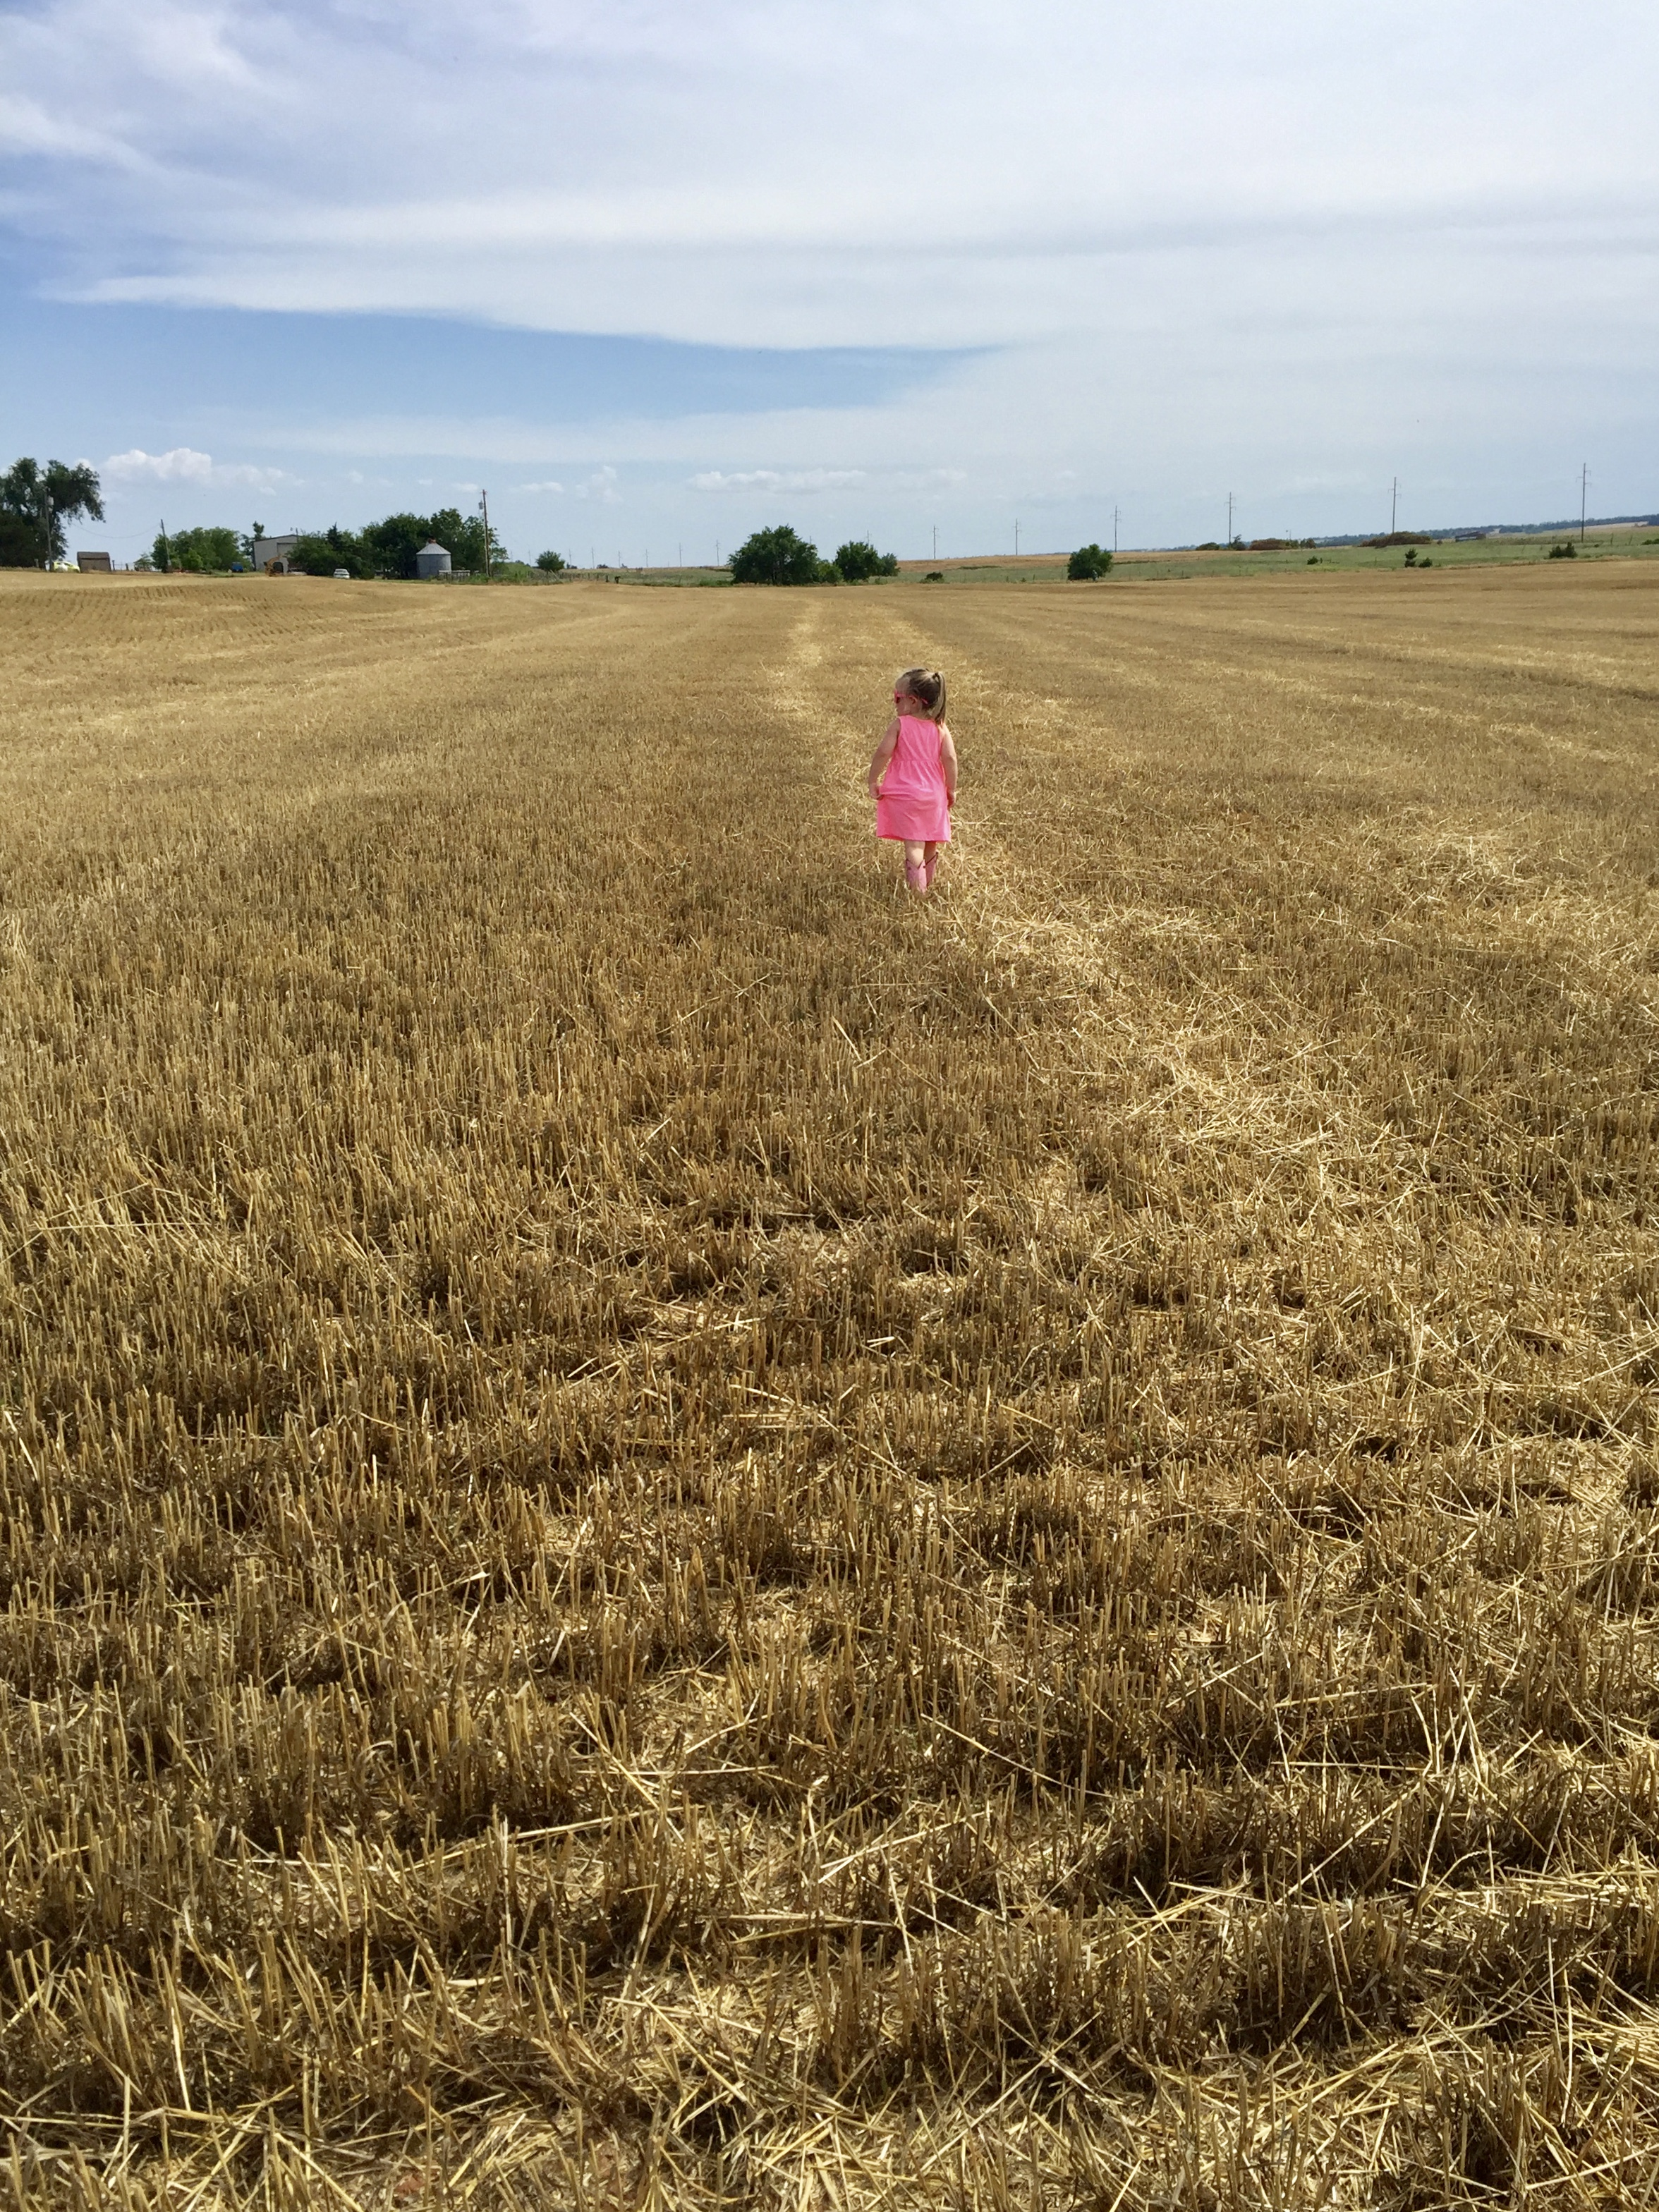 Morgan's photo of her cousin in her grandfather's field in Oklahoma